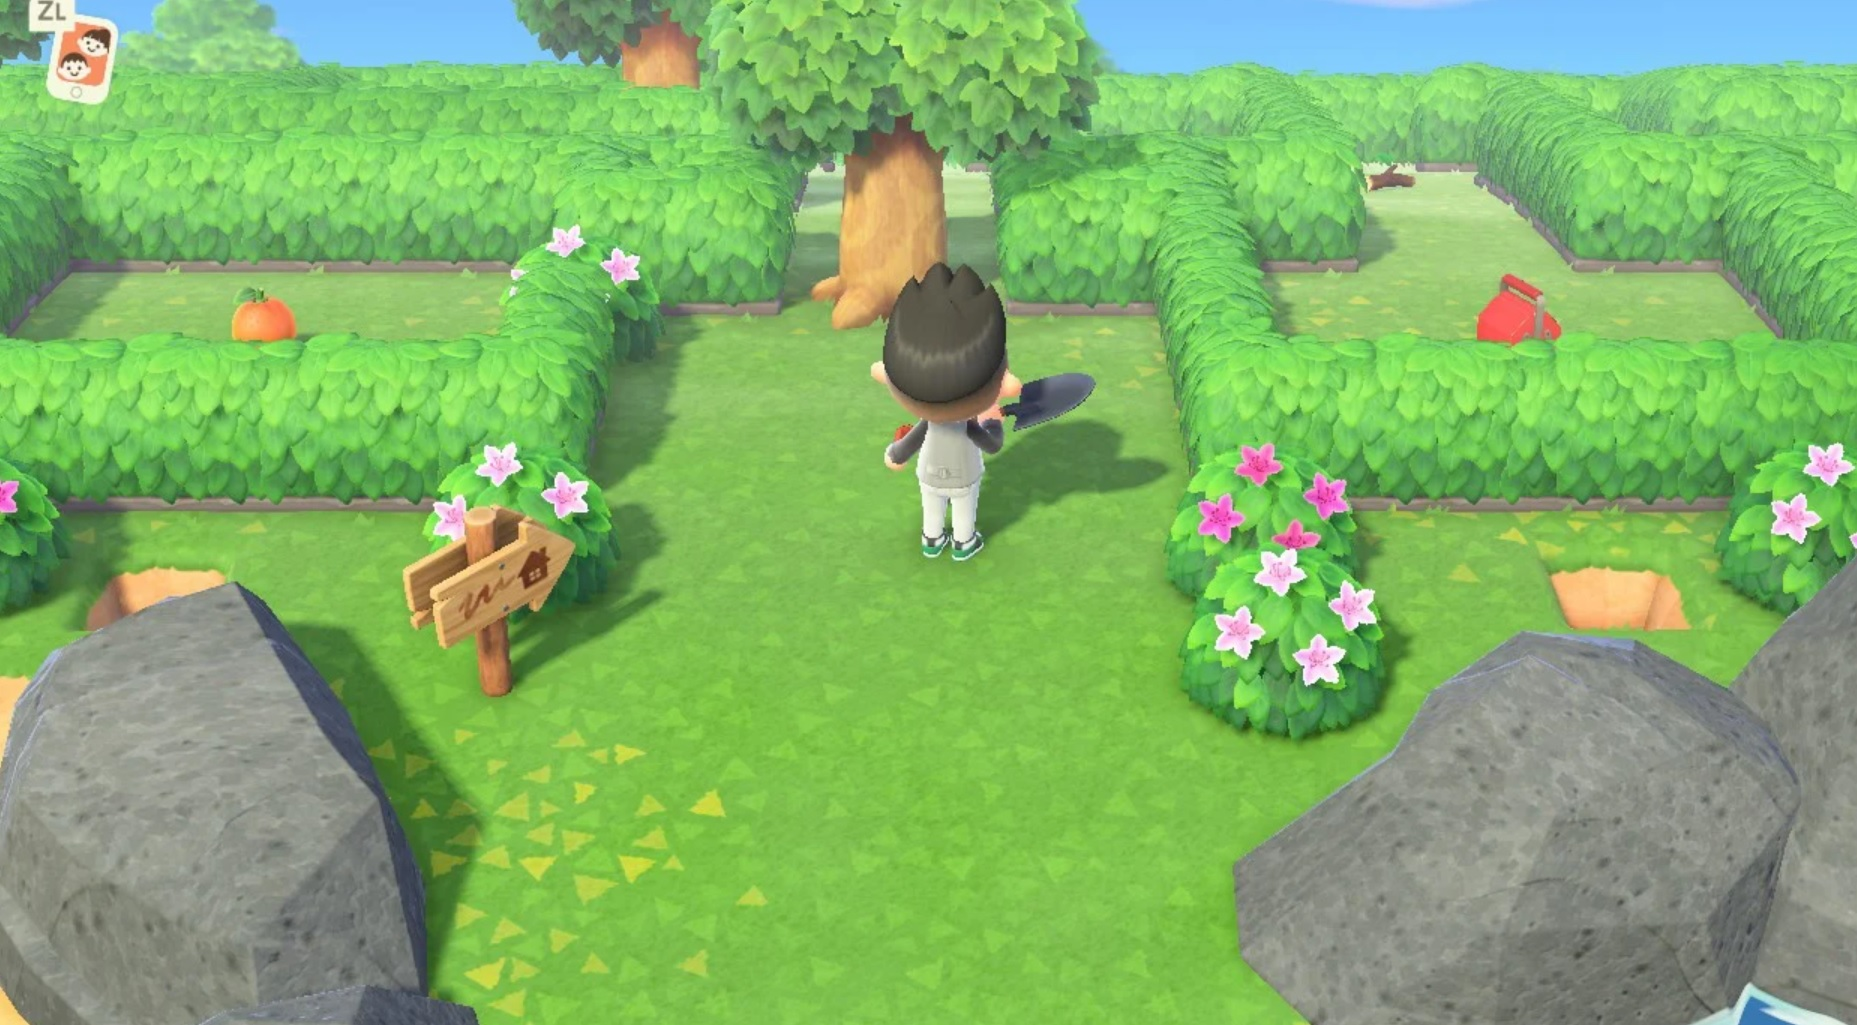 Animal Crossing: New Horizons already crushed its lifetime sales predictions in a little over a month screenshot